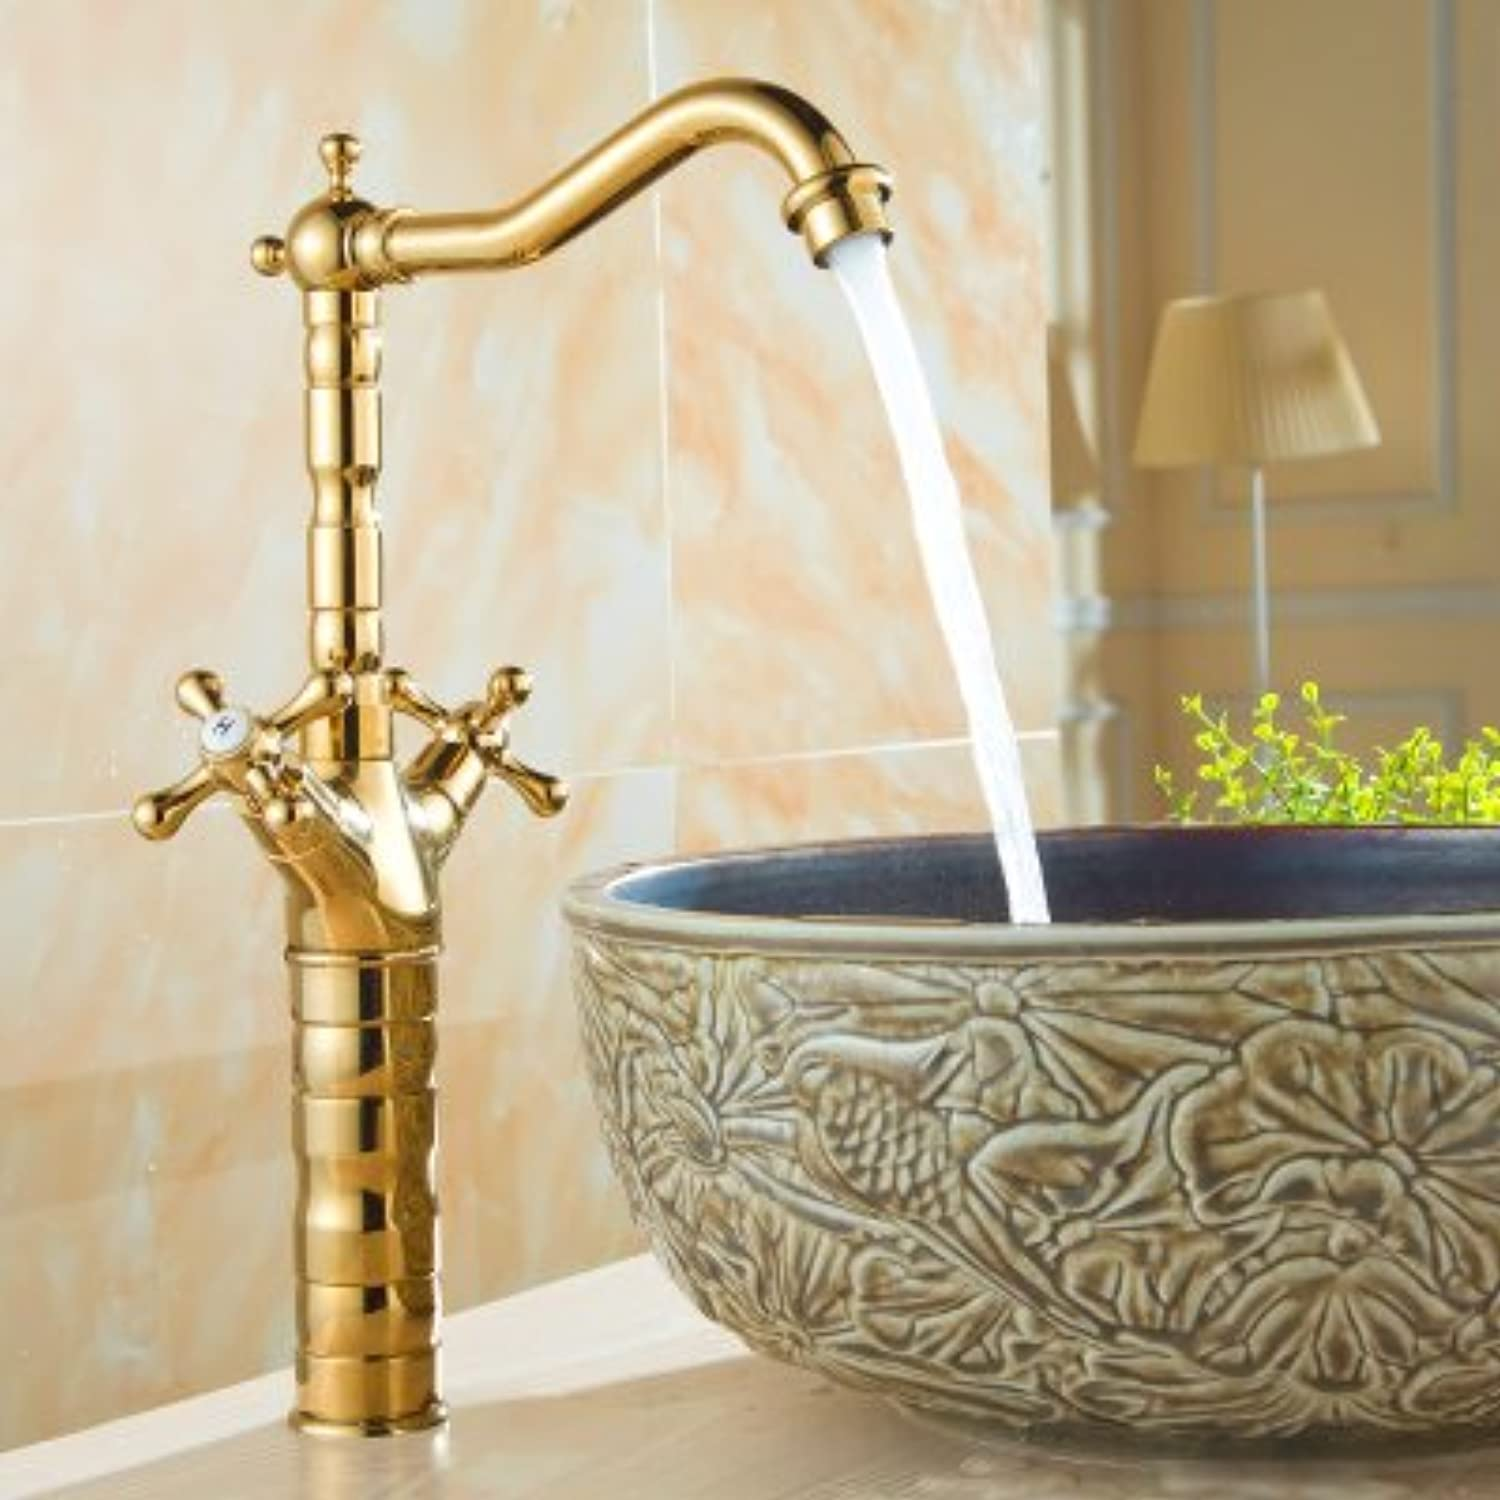 Maifeini ?golden Dragon Throughout Europe Copper Deluxe Bathroom Faucet Basin Mixer Single Hole Kim Classical Faucet, Brass,